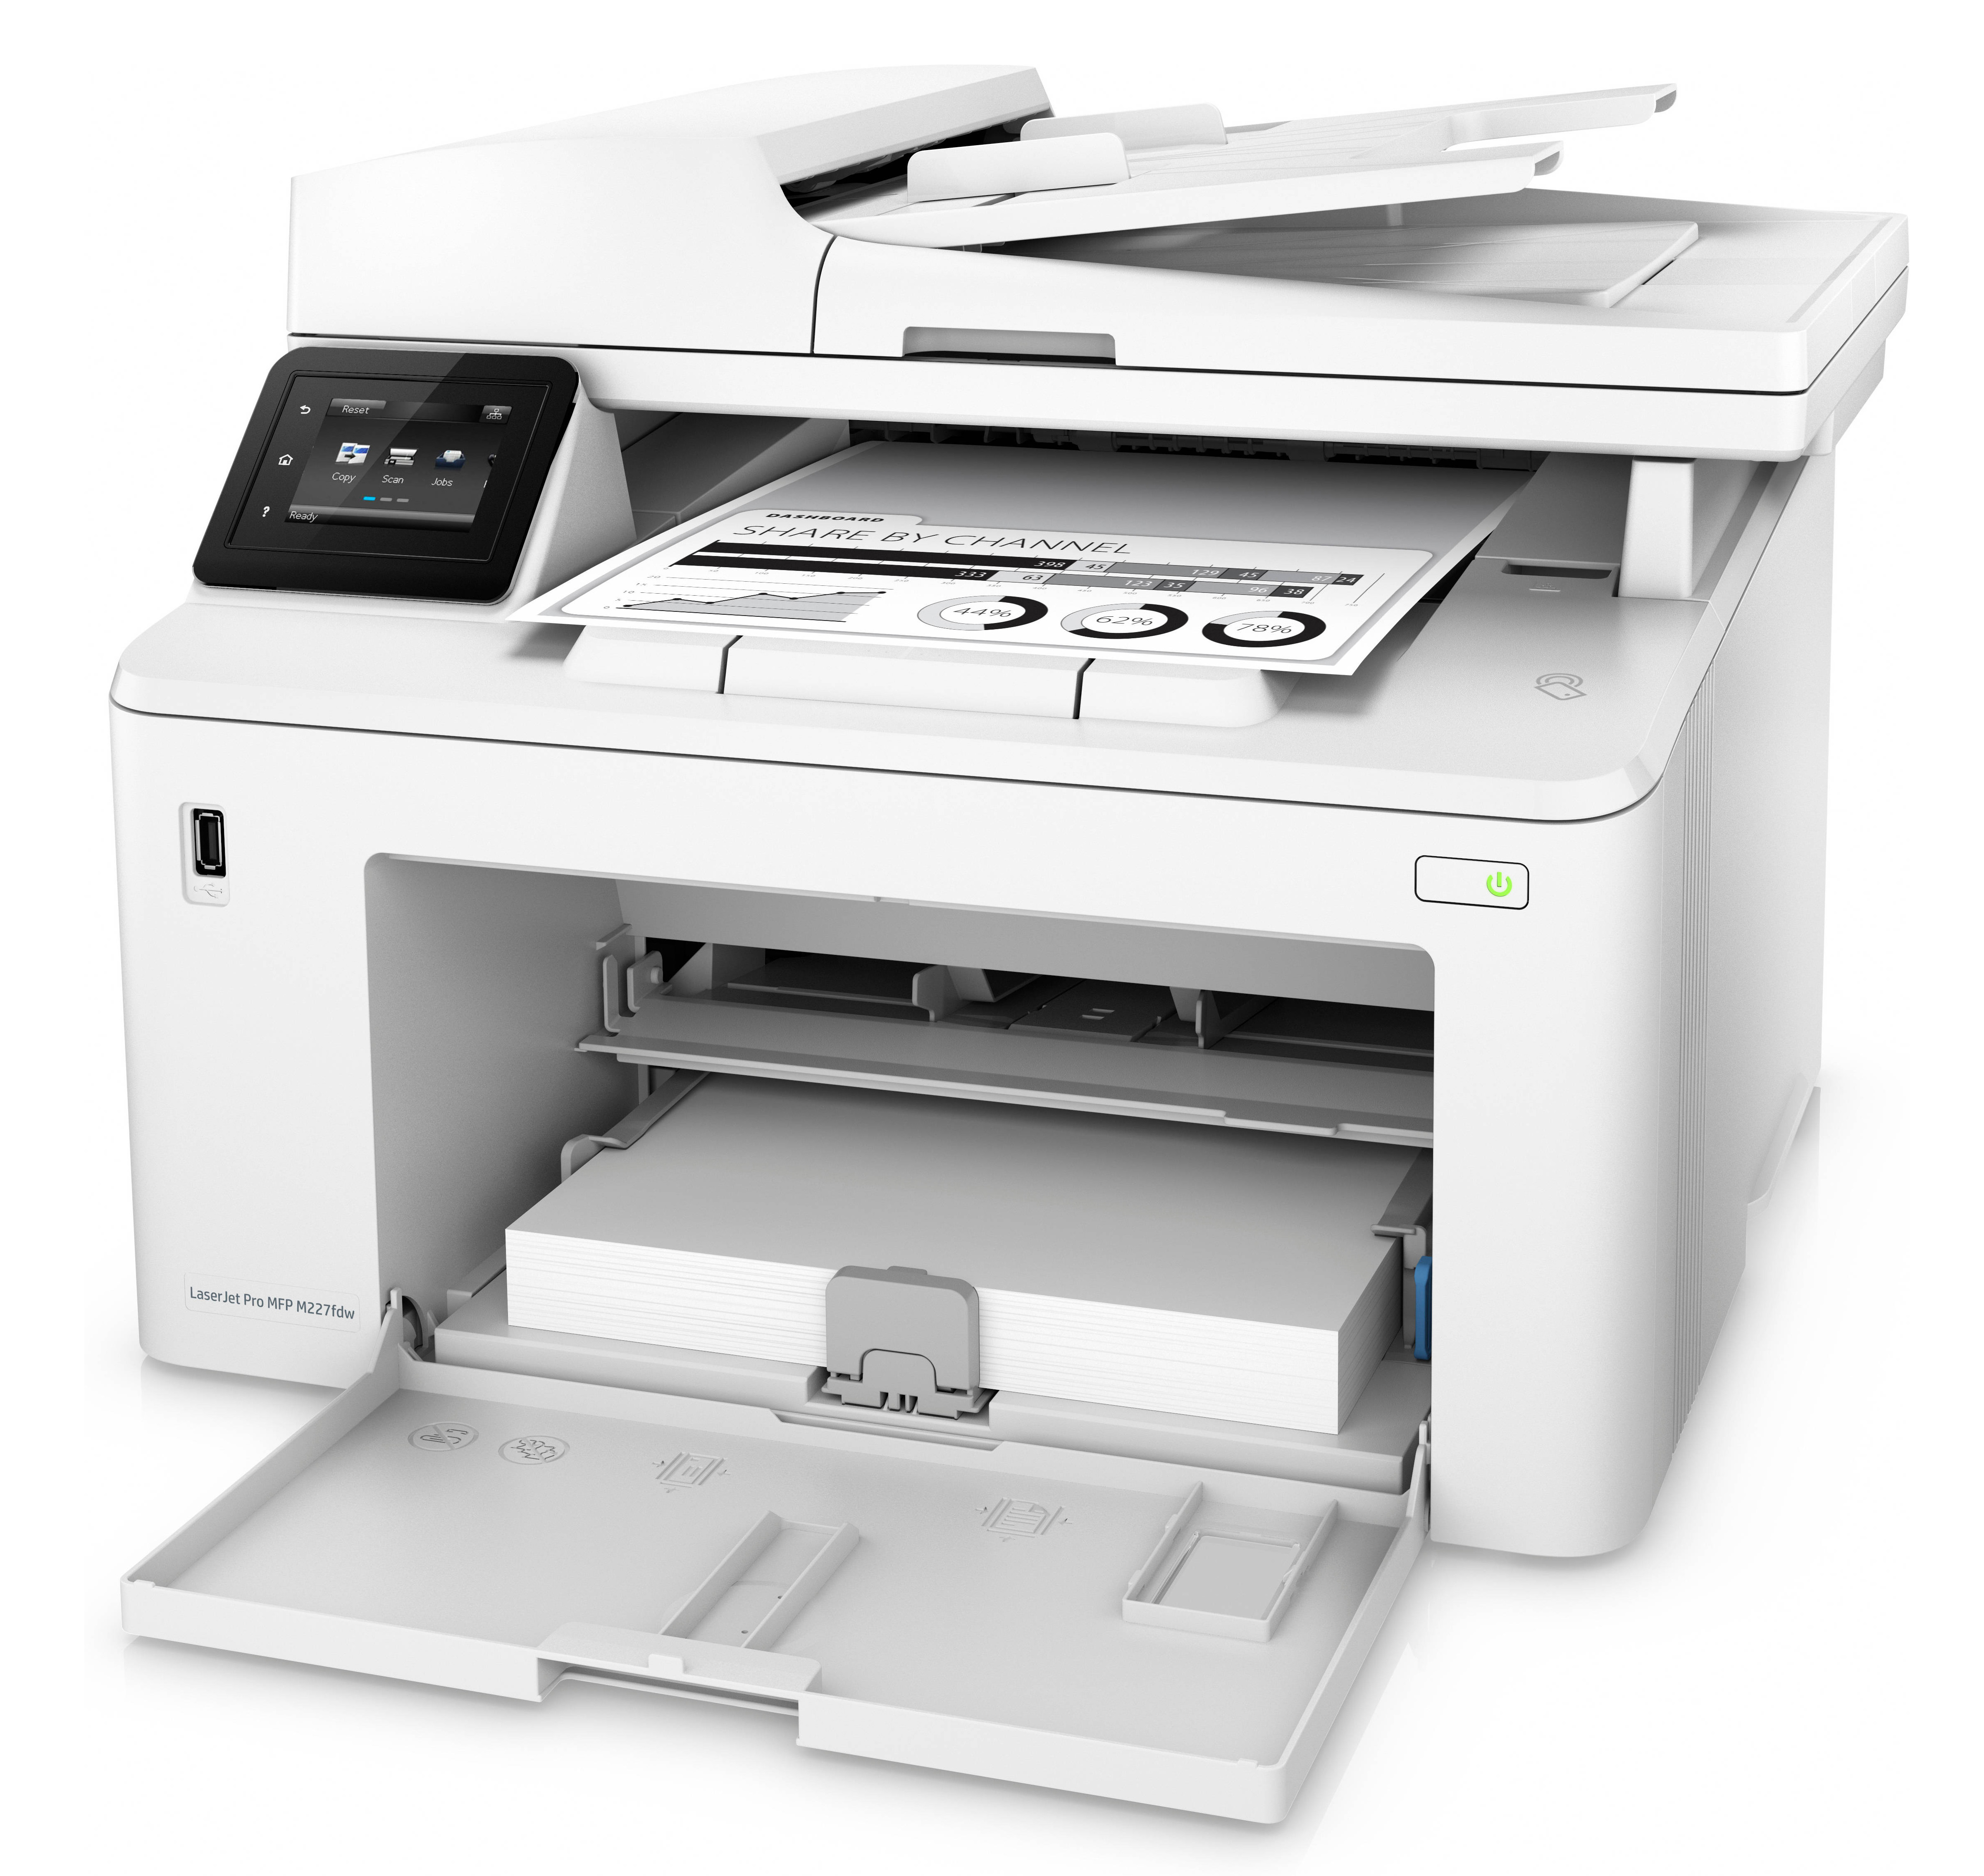 HP LaserJet Pro M227fdw - Black Laser Printer, Fax, Scan, A4, Wi-Fi